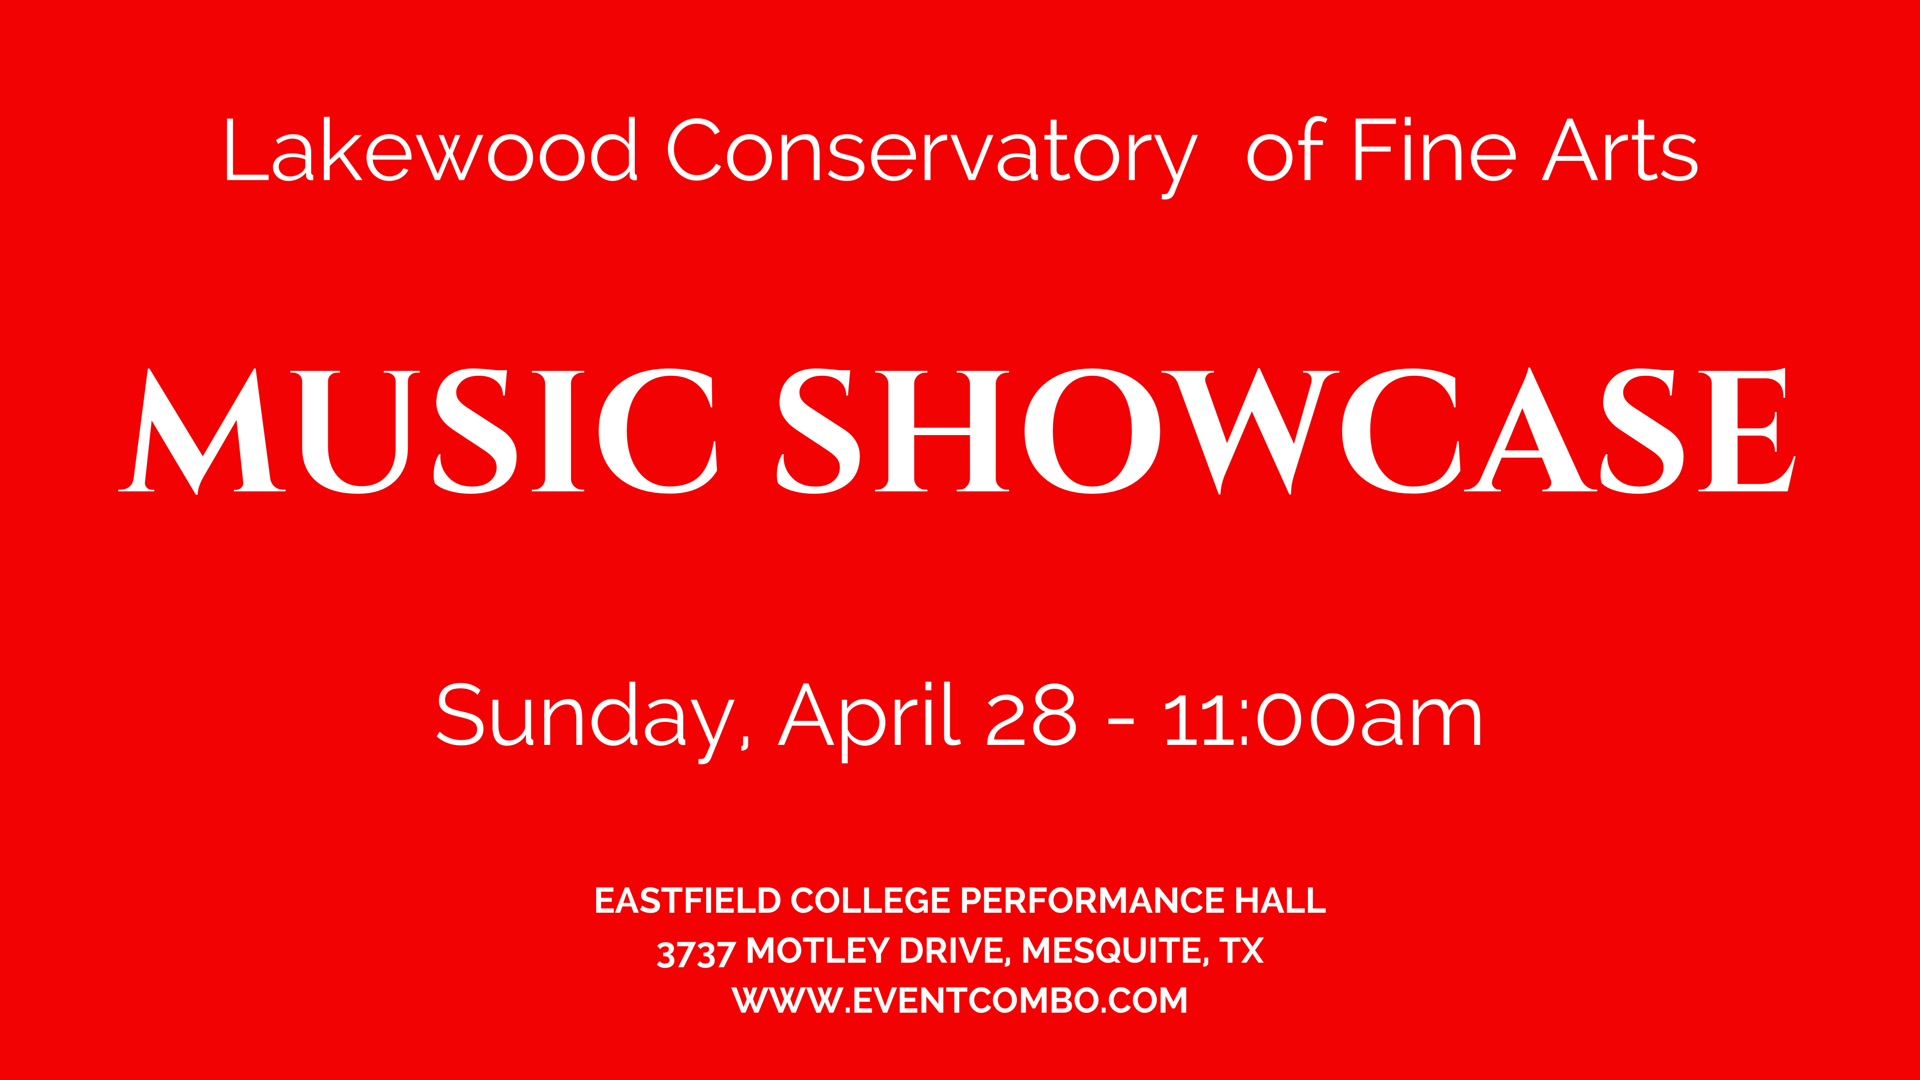 Music Showcase - Lakewood Conservatory of Fine Arts